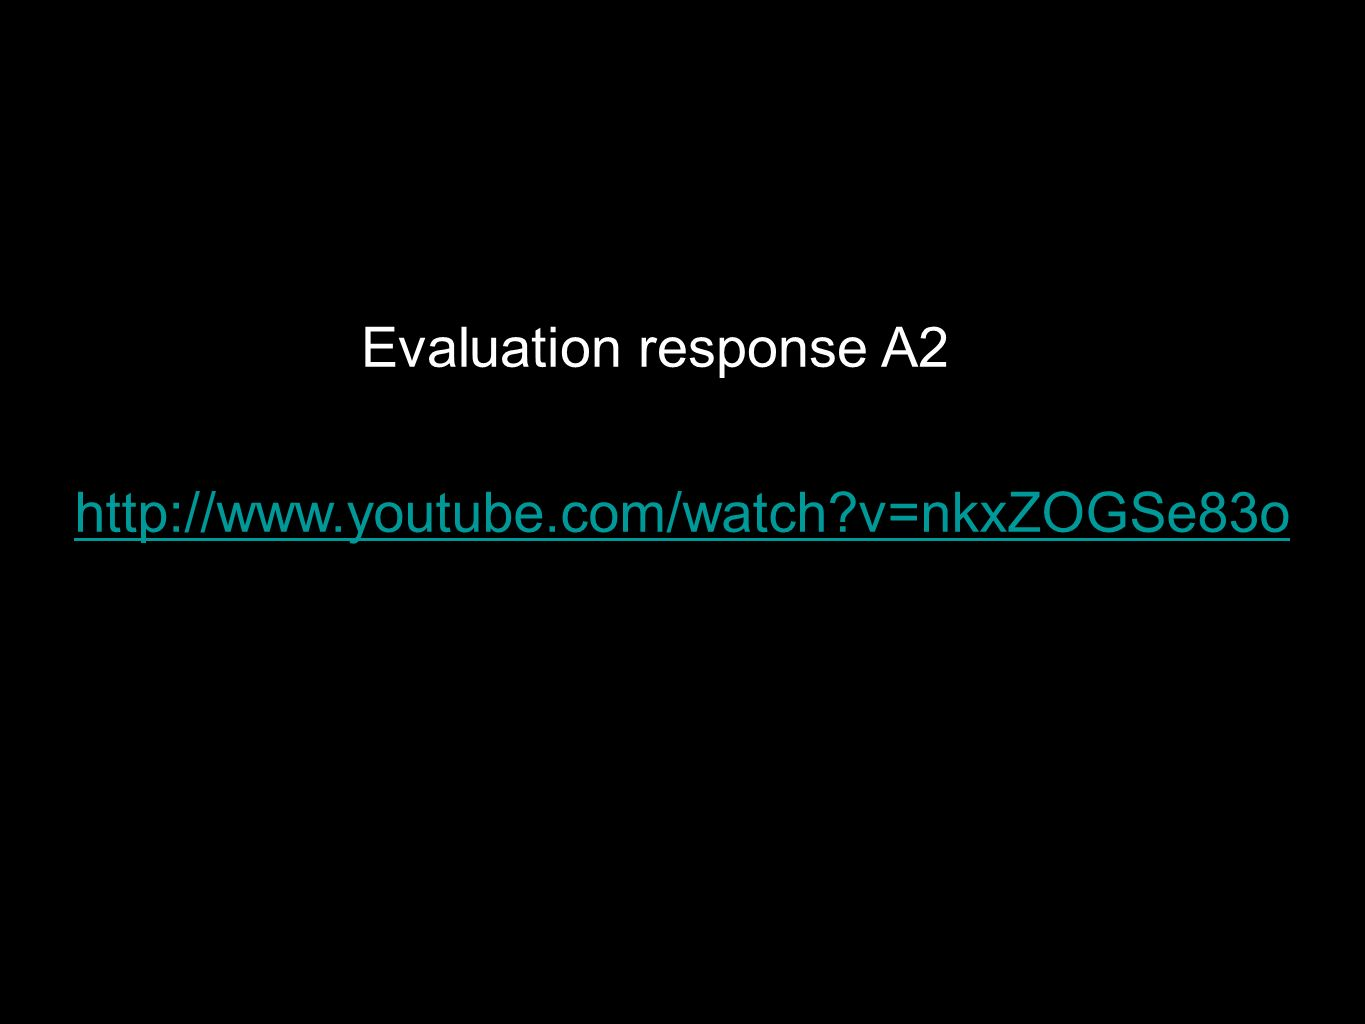 http://www.youtube.com/watch?v=nkxZOGSe83o Evaluation response A2